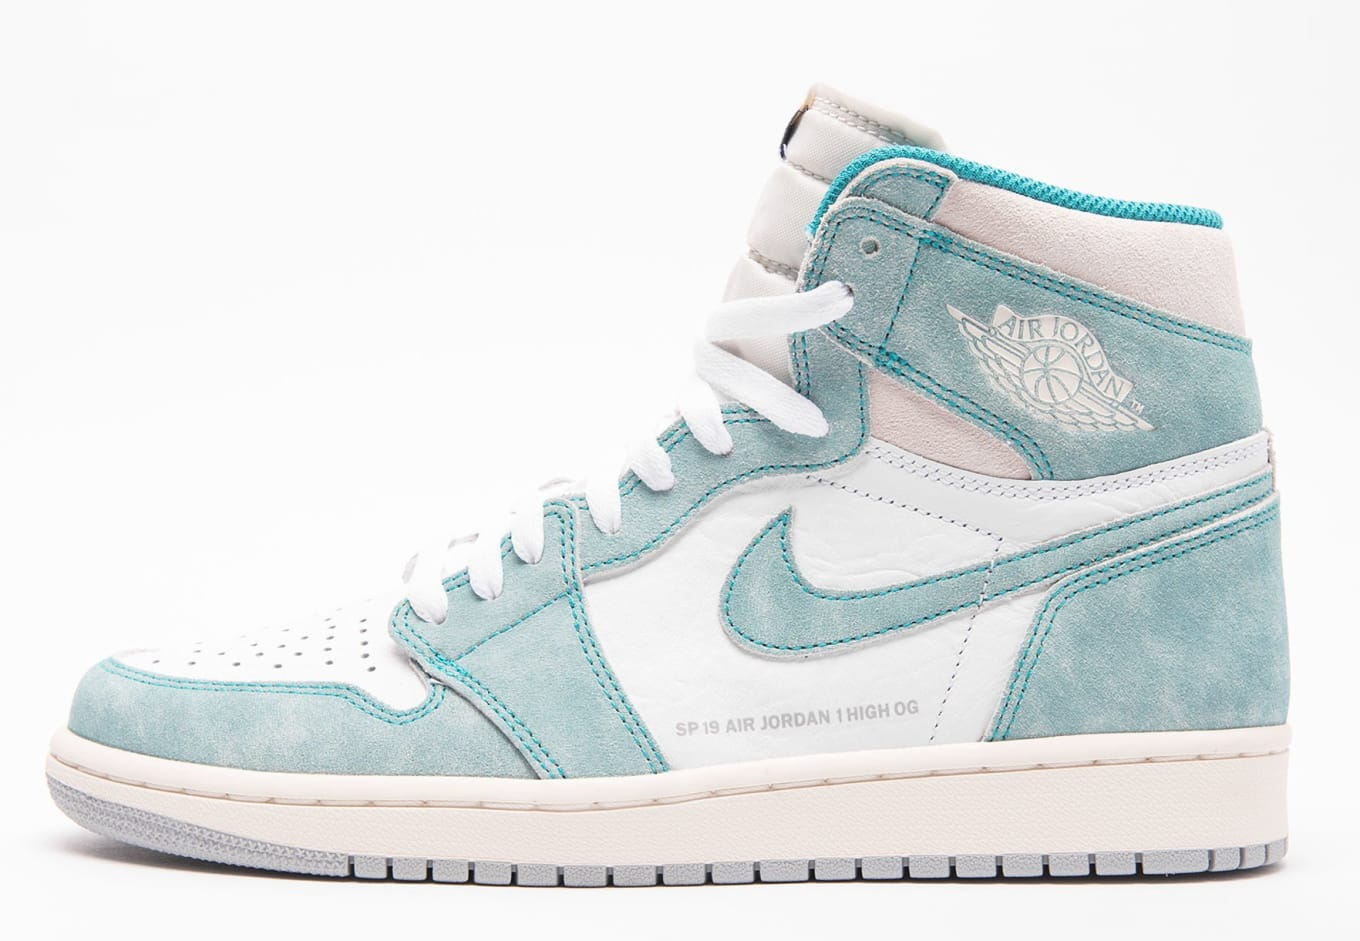 87564c77099 Air Jordan 1 Turbo Green/White/Light Smoke Grey/Sail Release Date ...